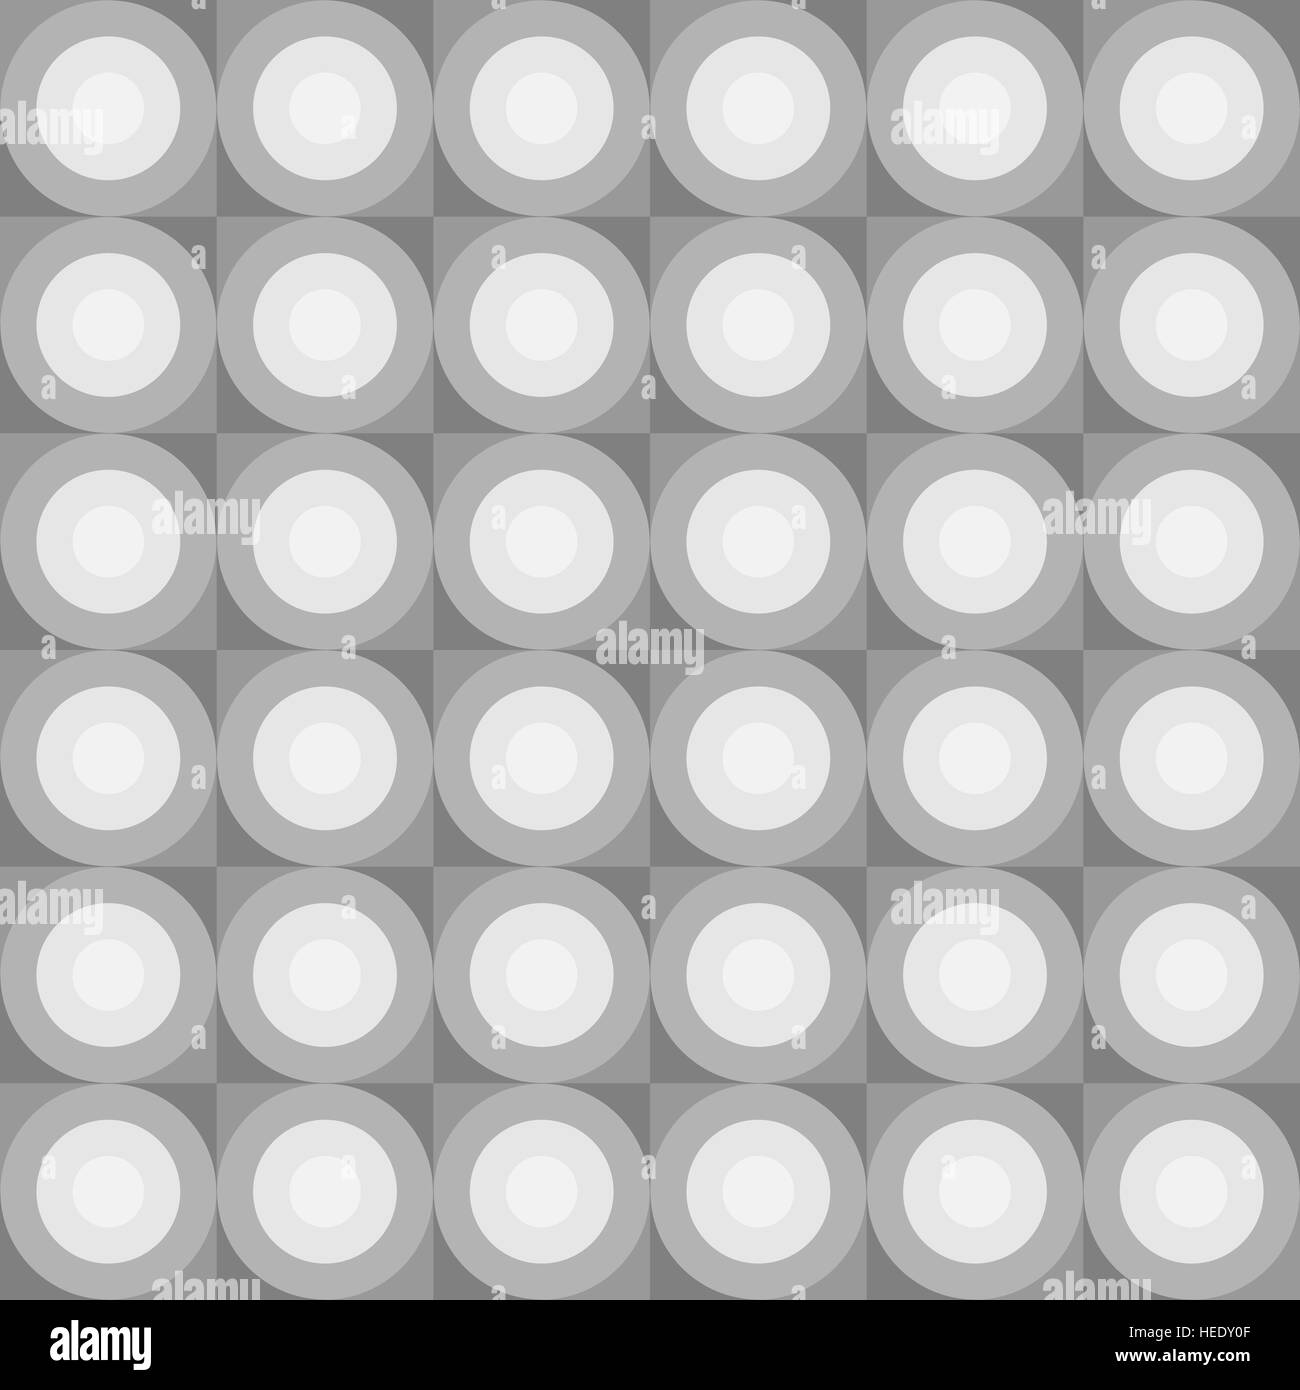 Vector seamless pattern. Abstract background made of rounds - Stock Image